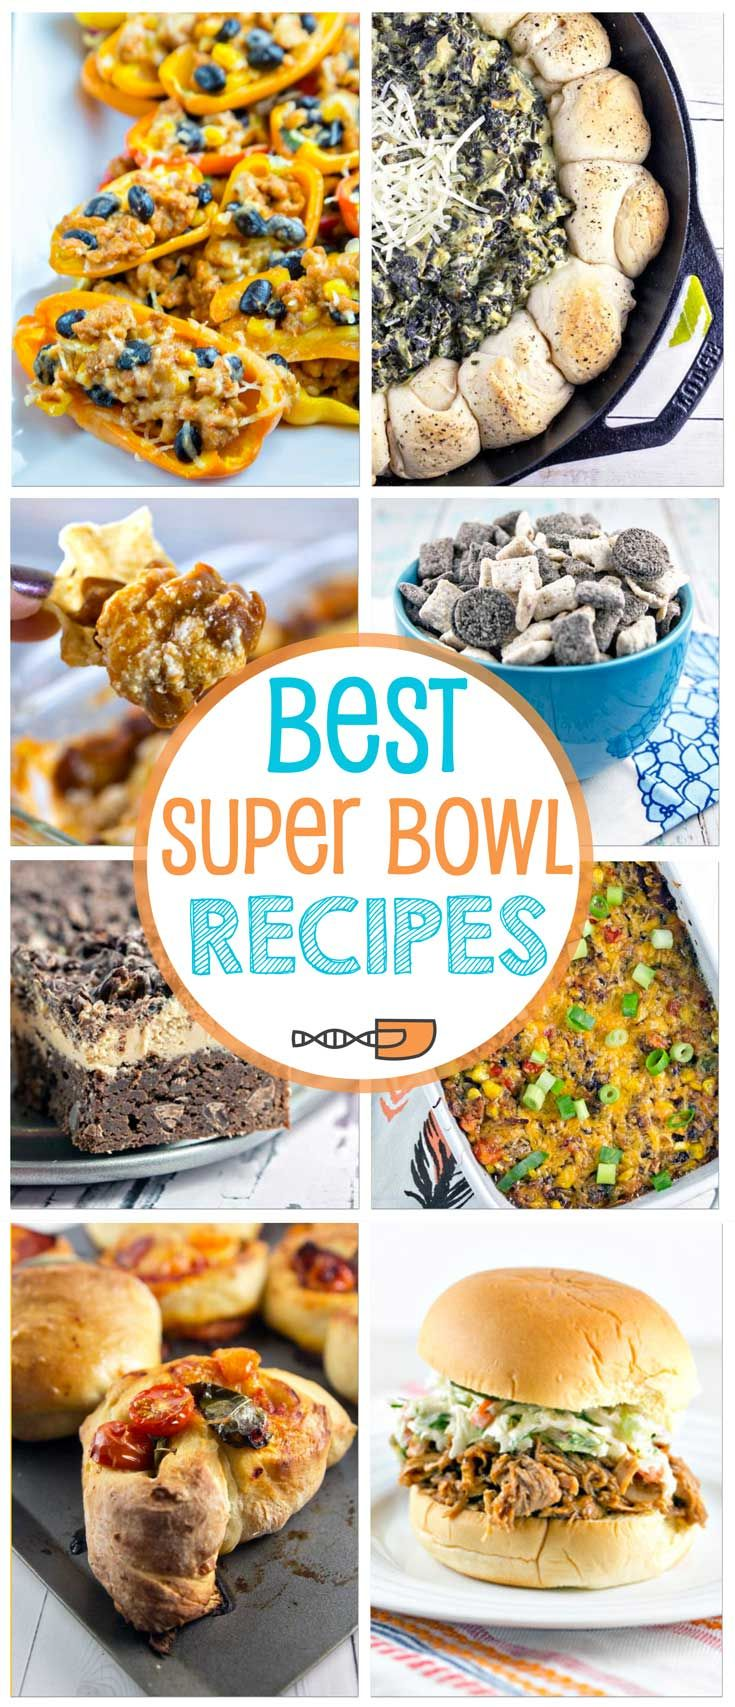 Dips, hot finger food appetizers, and desserts - here are the best Super Bowl recipes for a perfect party! via @bnsnbrnrbakery